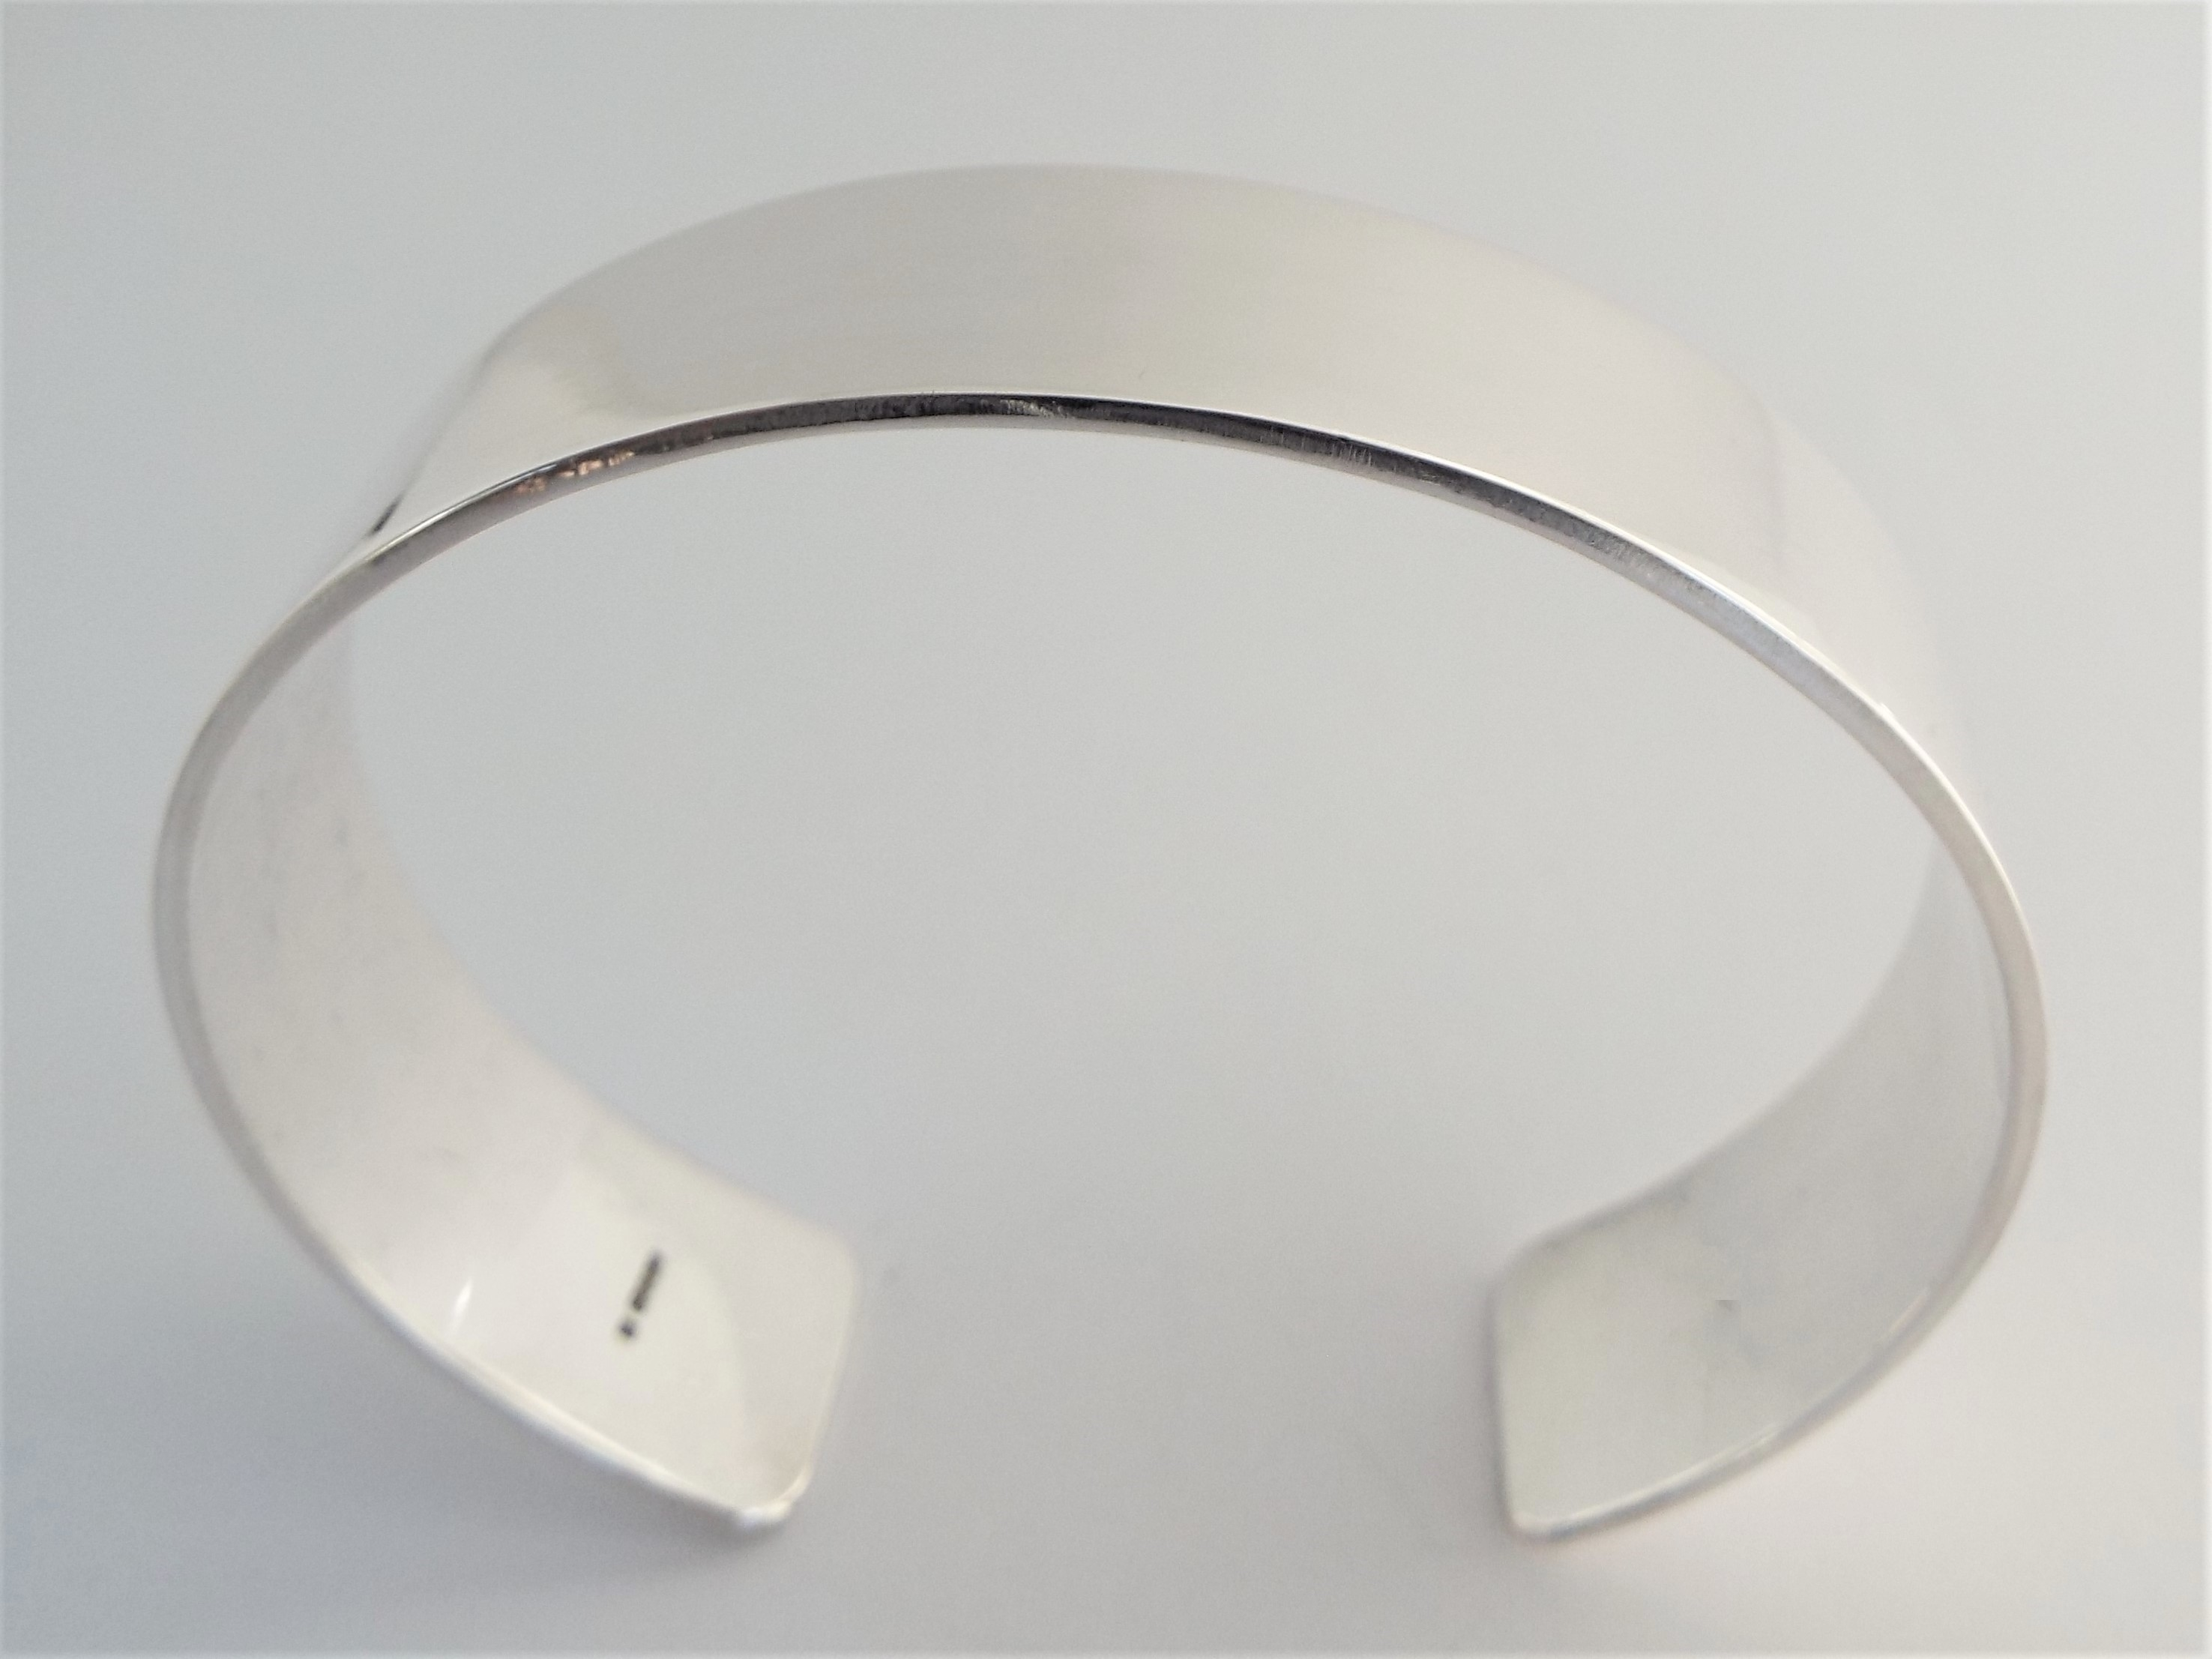 Solid Silver Cuff Bracelet - 15mm wide polished finish